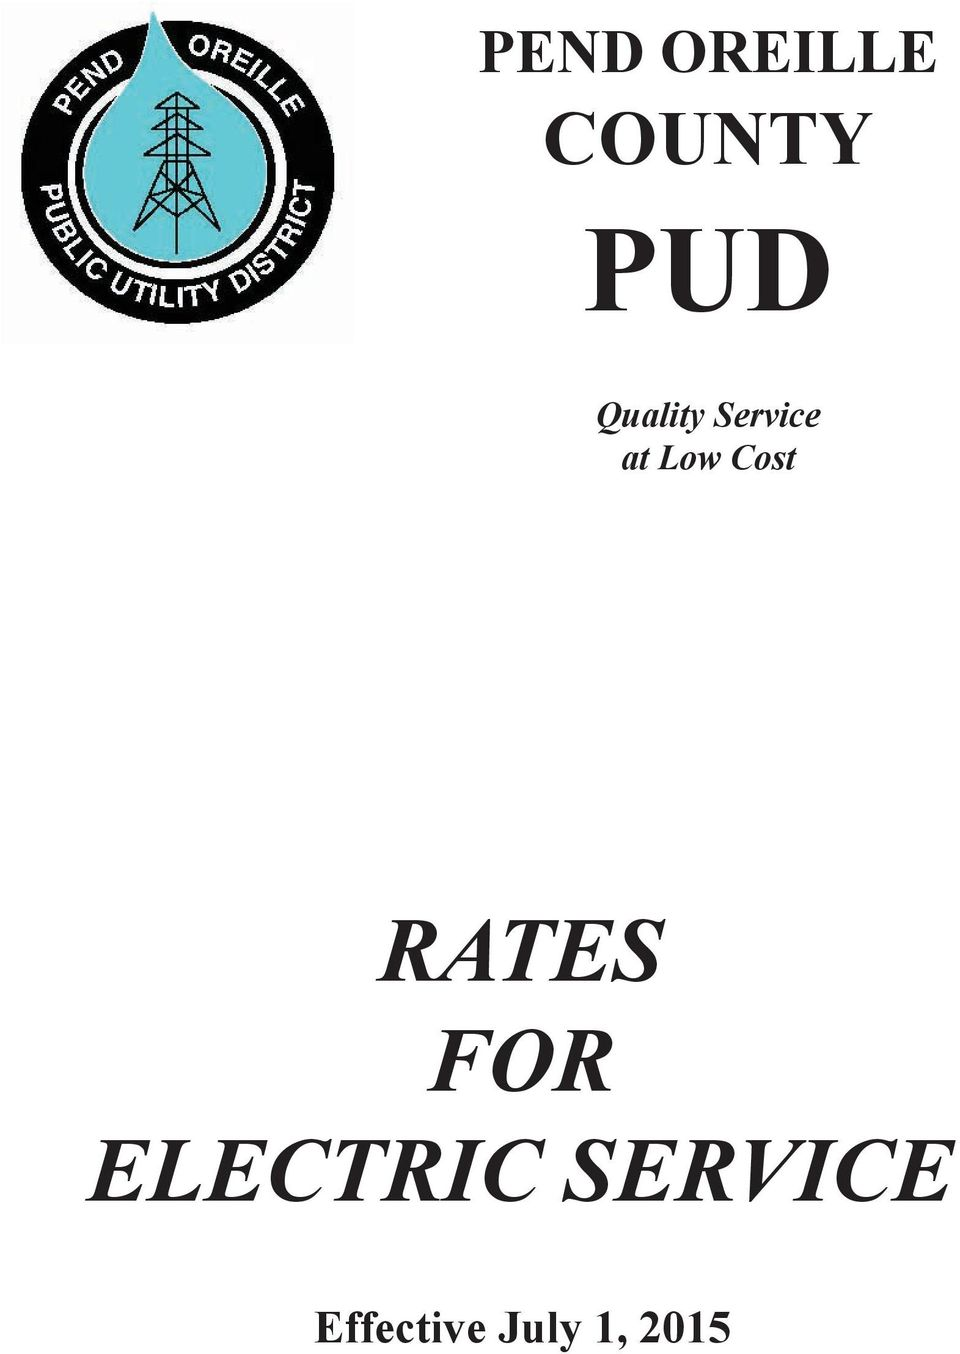 Cost RATES FOR ELECTRIC